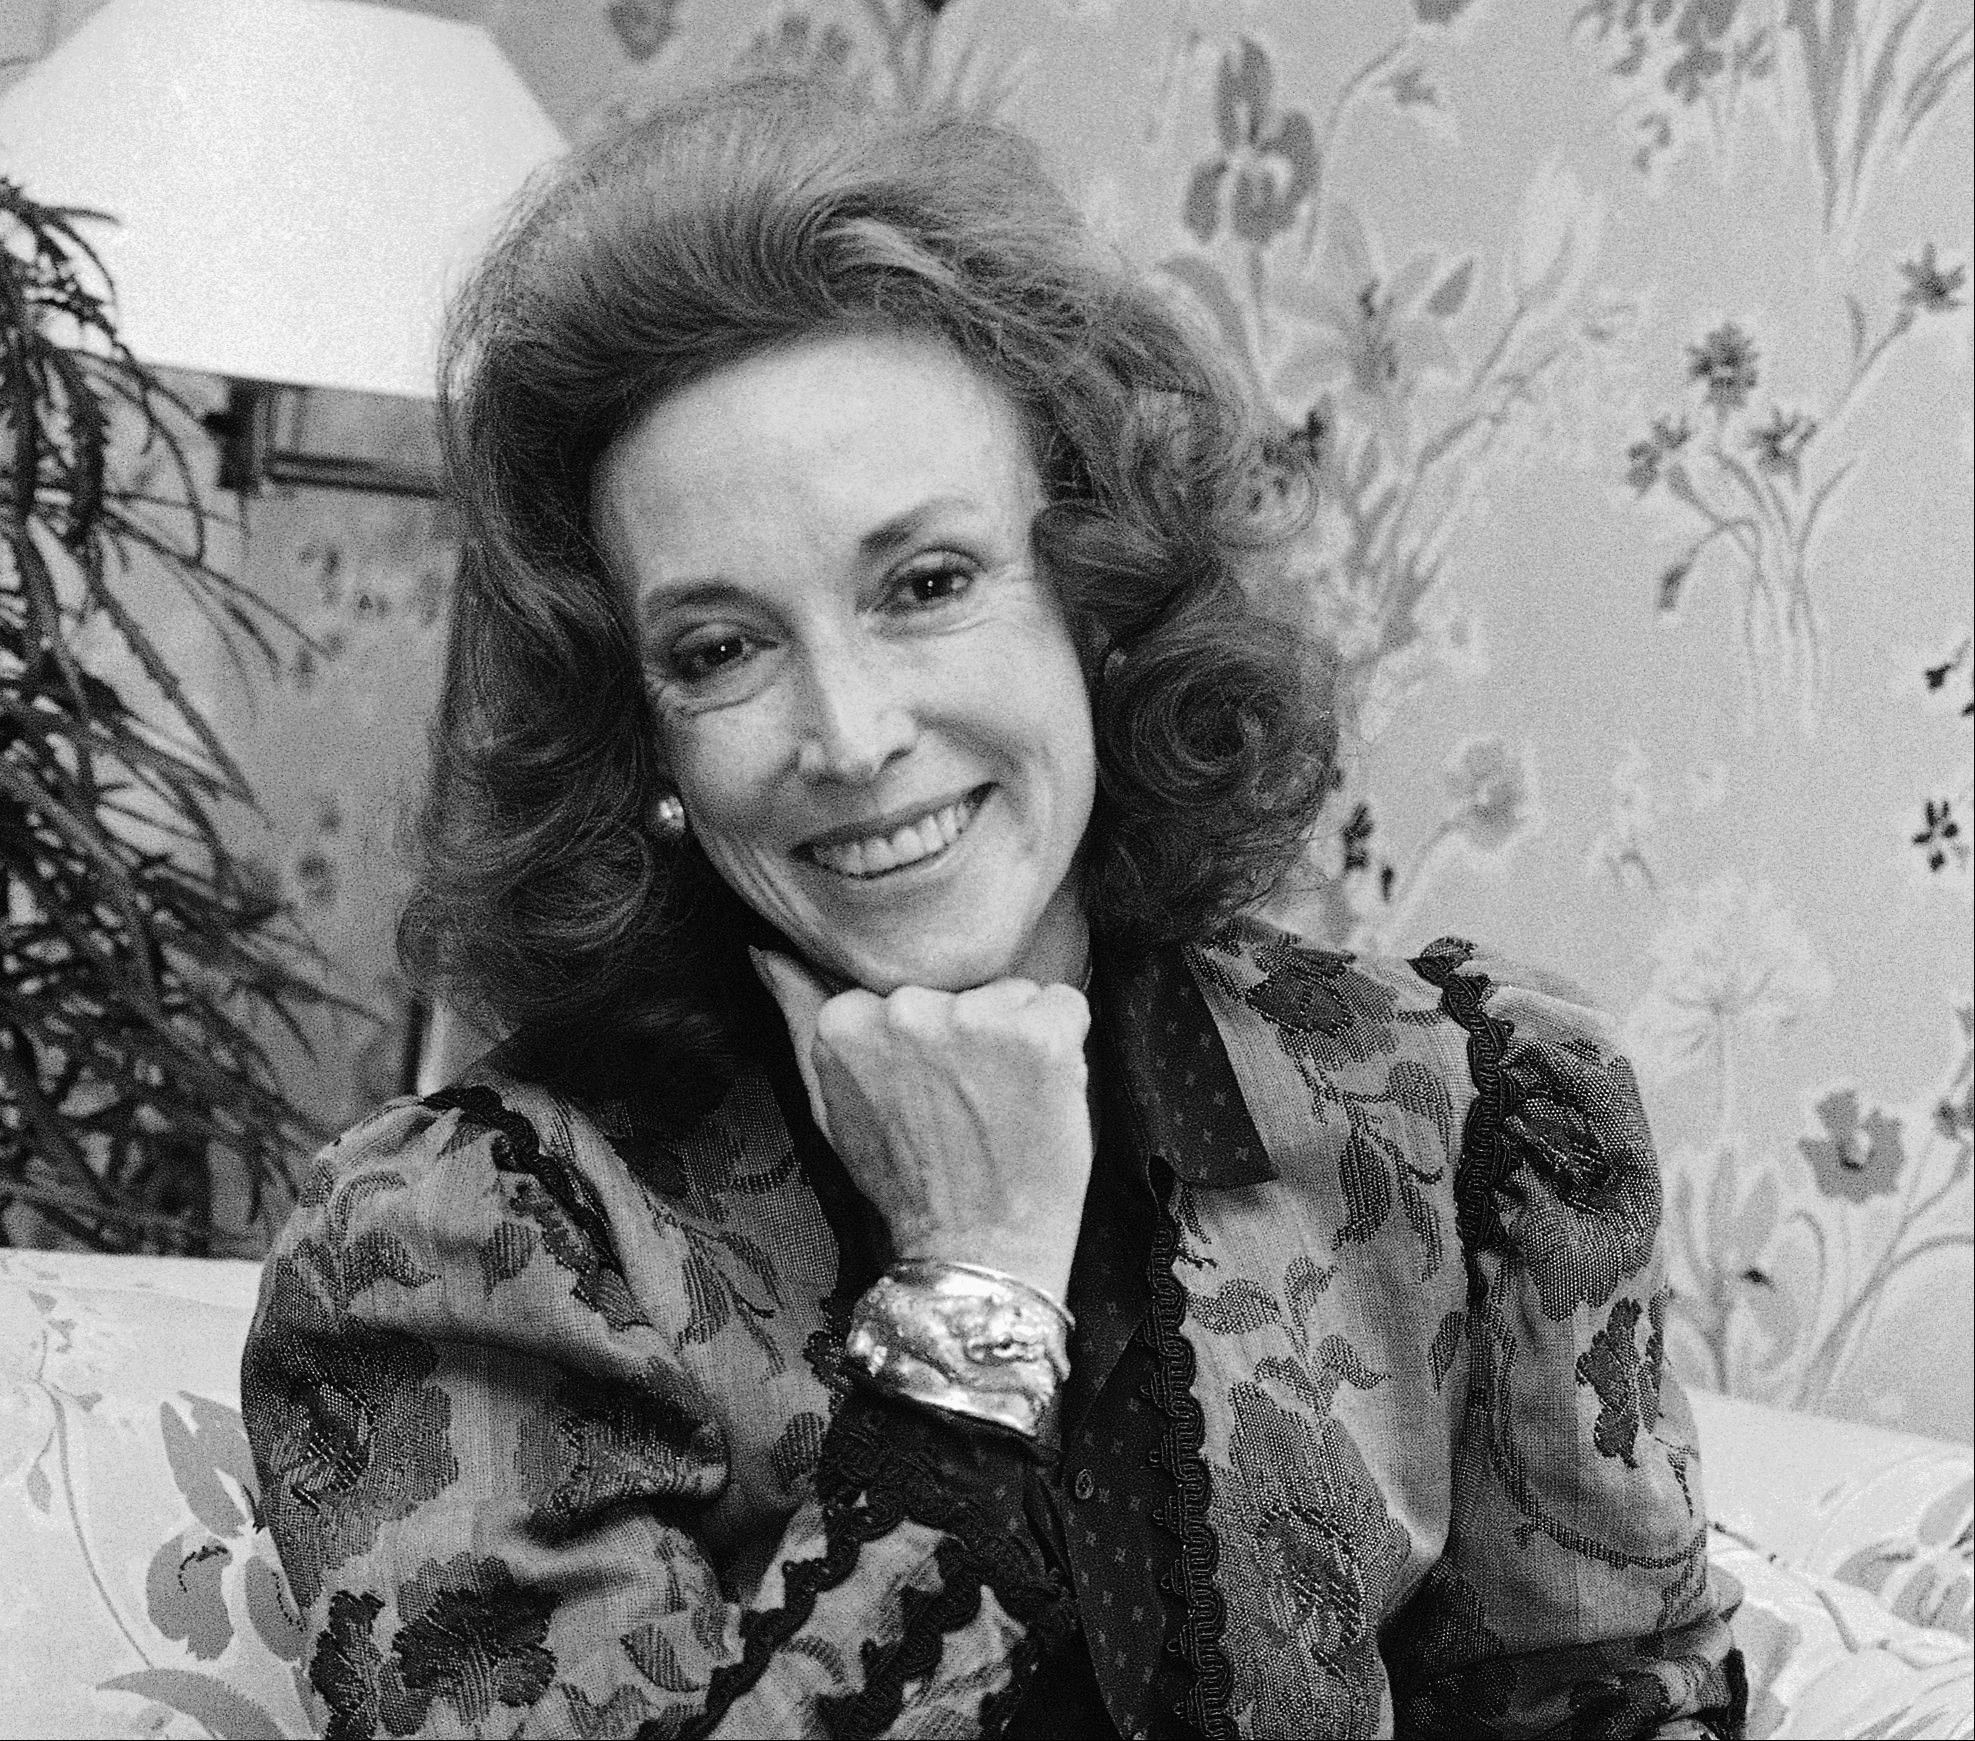 This Sept. 20, 2982 file photo shows Cosmopolitan editor Helen Gurley Brown is shown during an interview at her office in New York. Brown, longtime editor of Cosmopolitan magazine, died Monday, Aug. 13, 2012 at a hospital in New York after a brief hospitalization. She was 90.